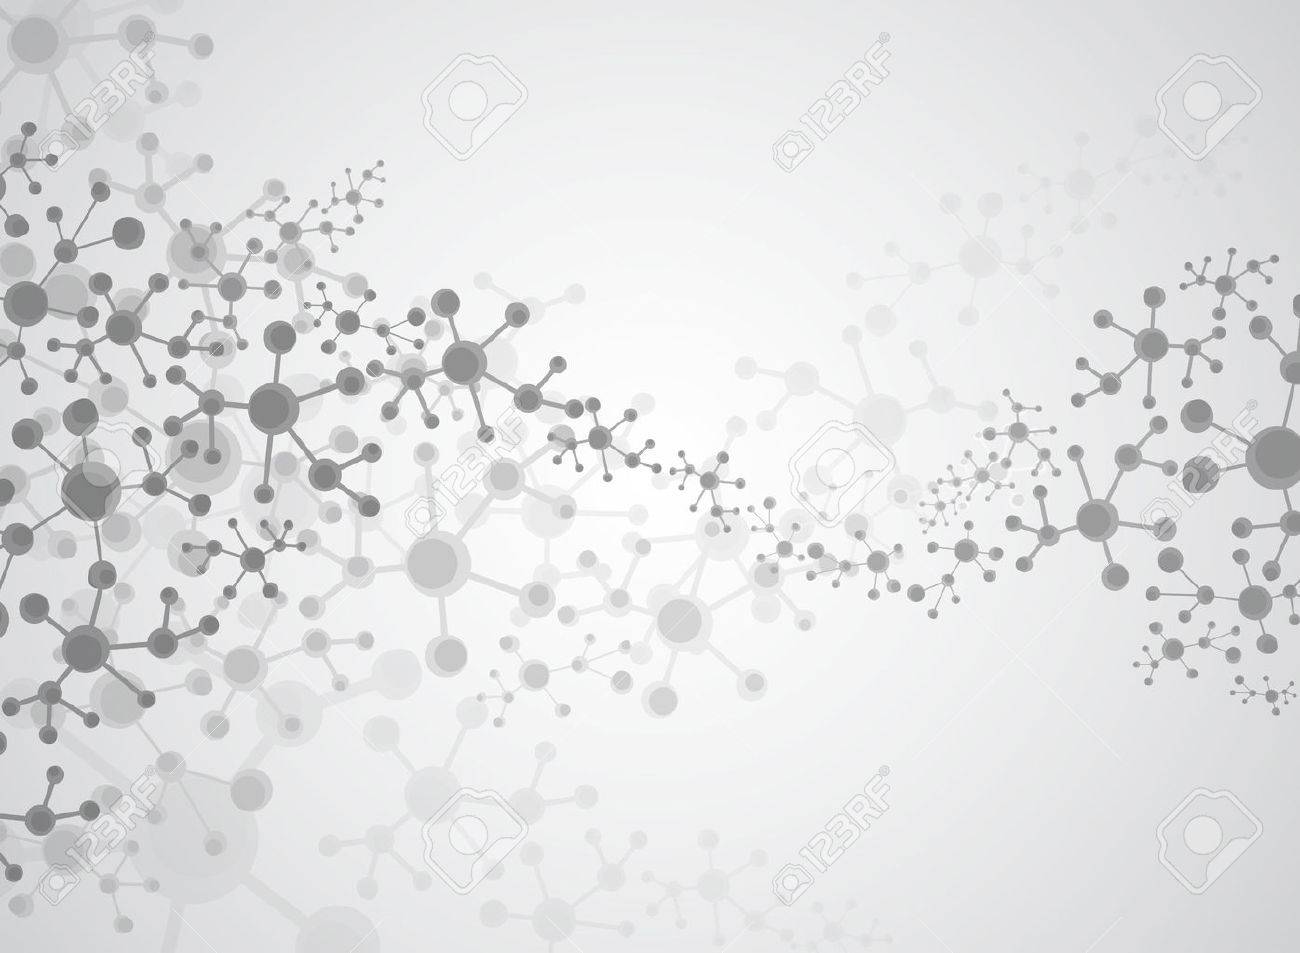 Abstract background medical substance and molecules. - 48125878